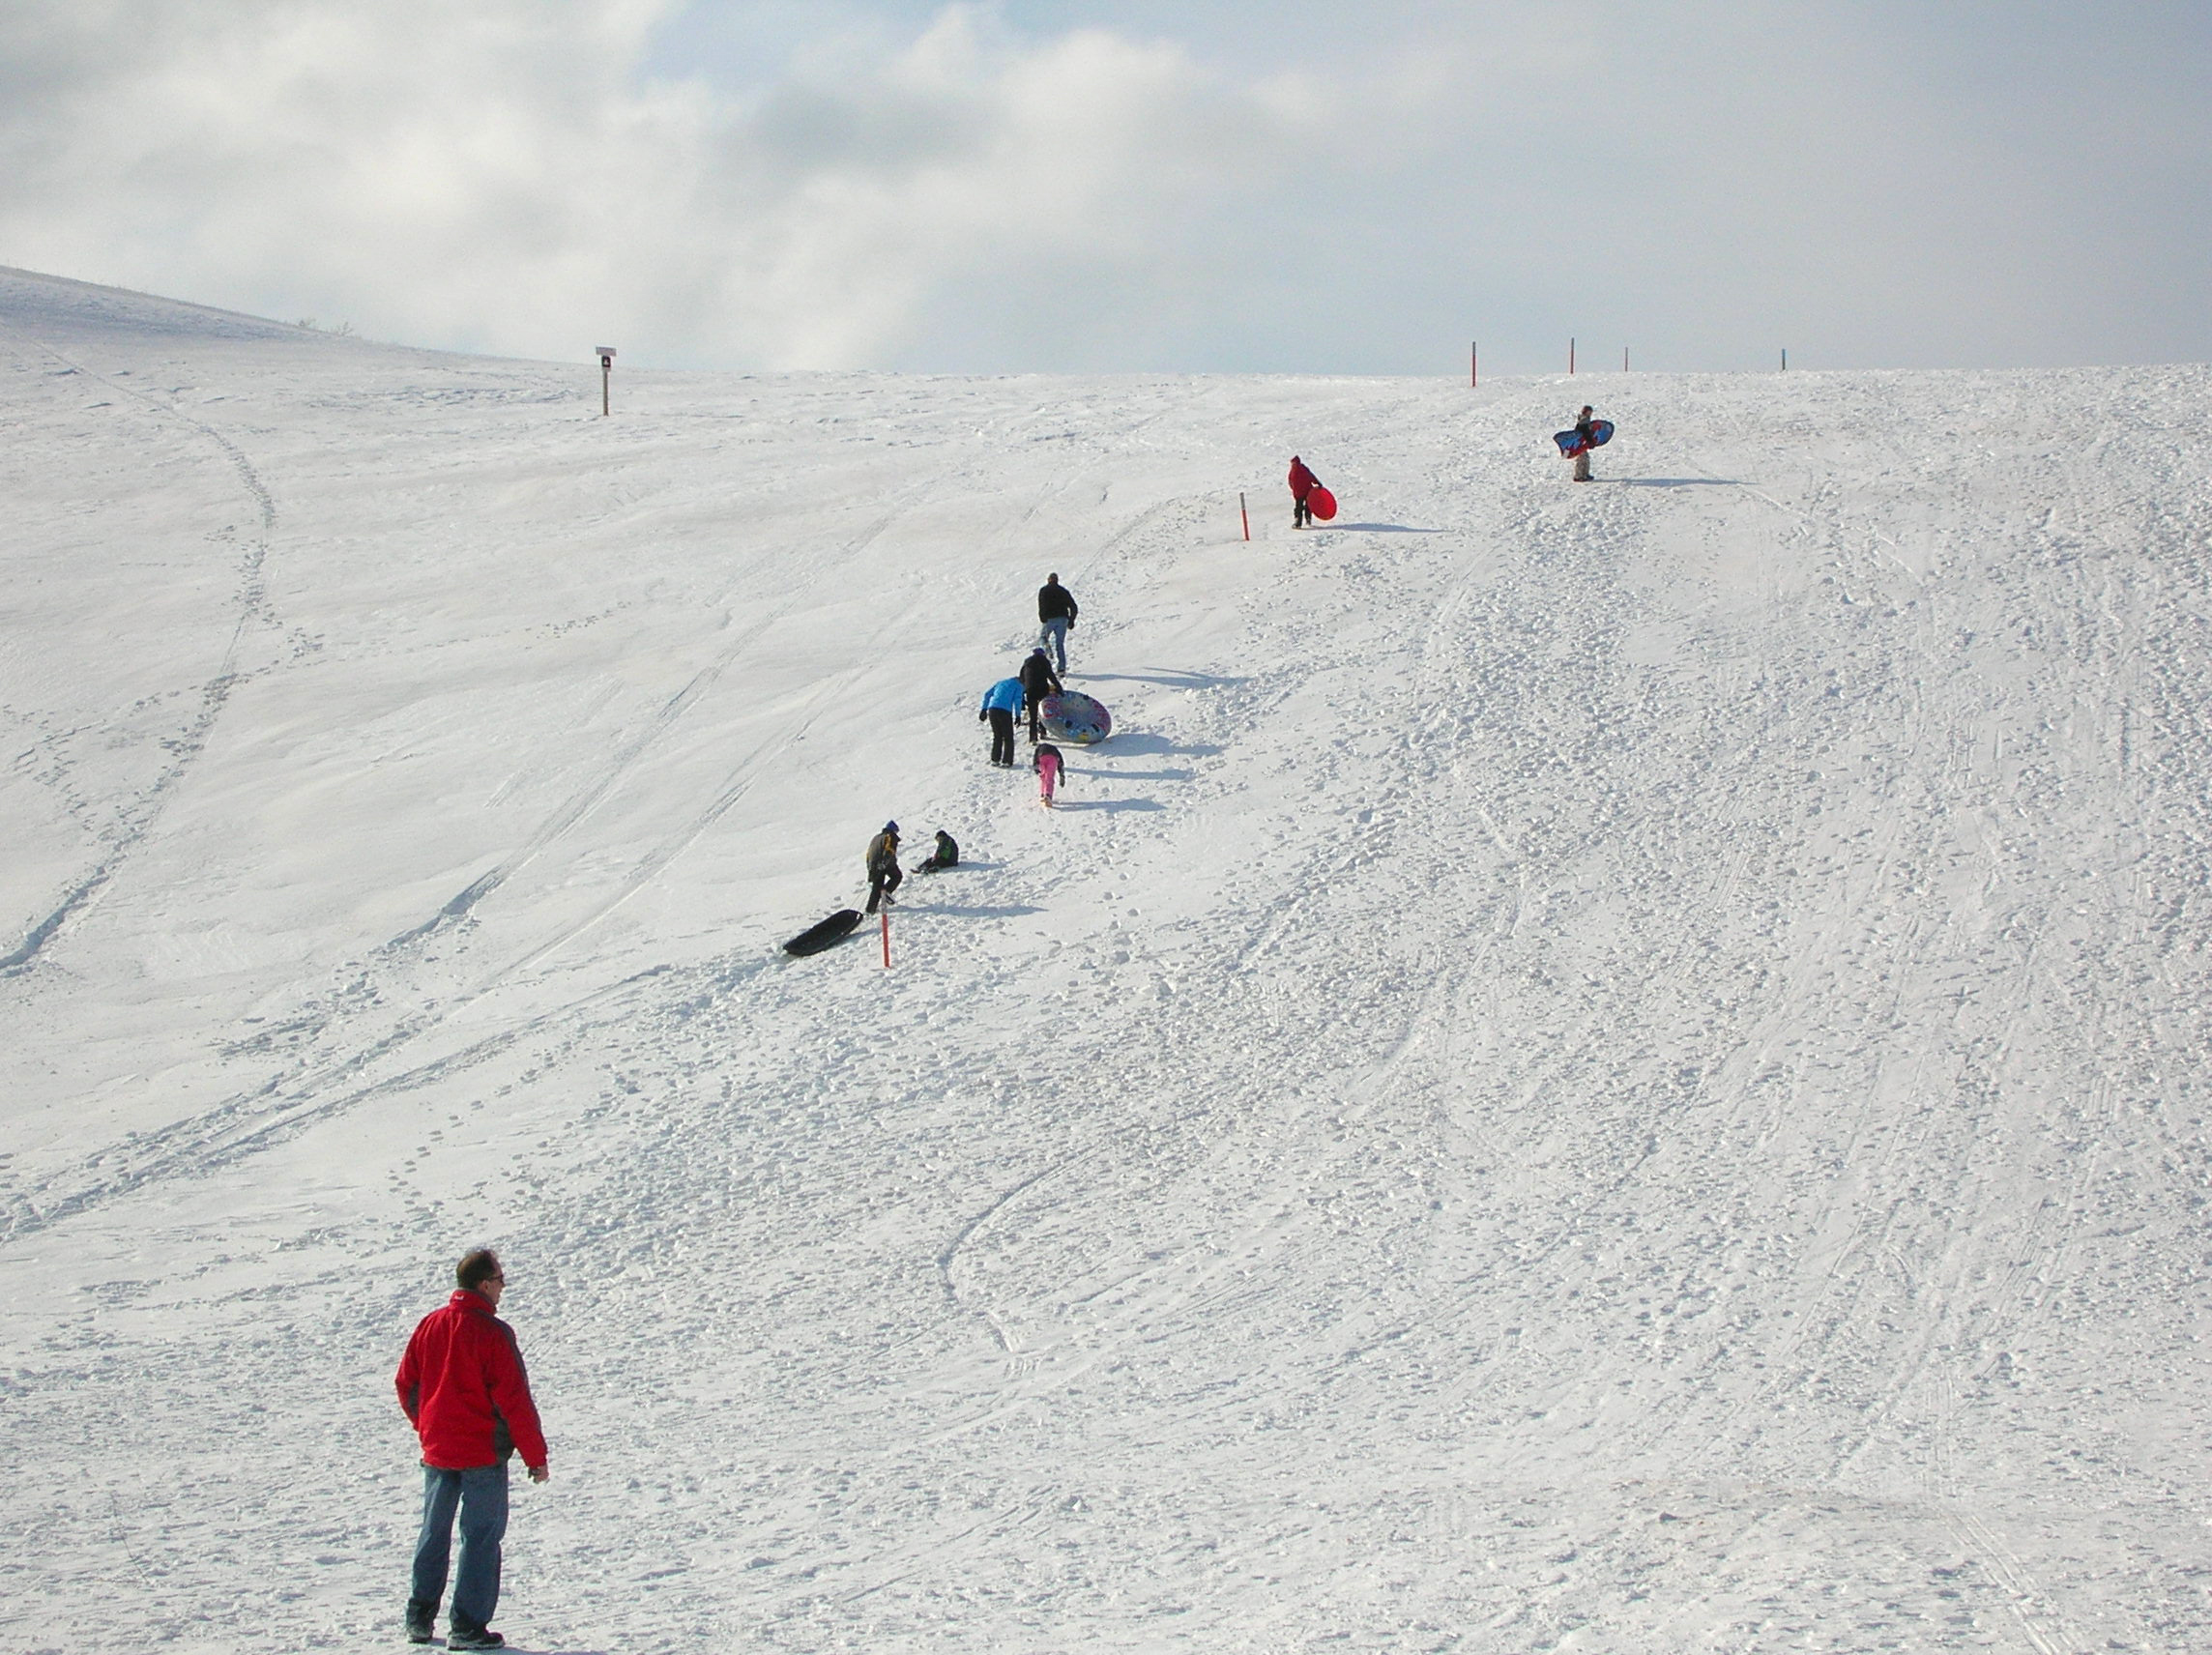 Winter Activities Sleeping Bear Dunes National Lakeshore US - The best sledding hills in north america